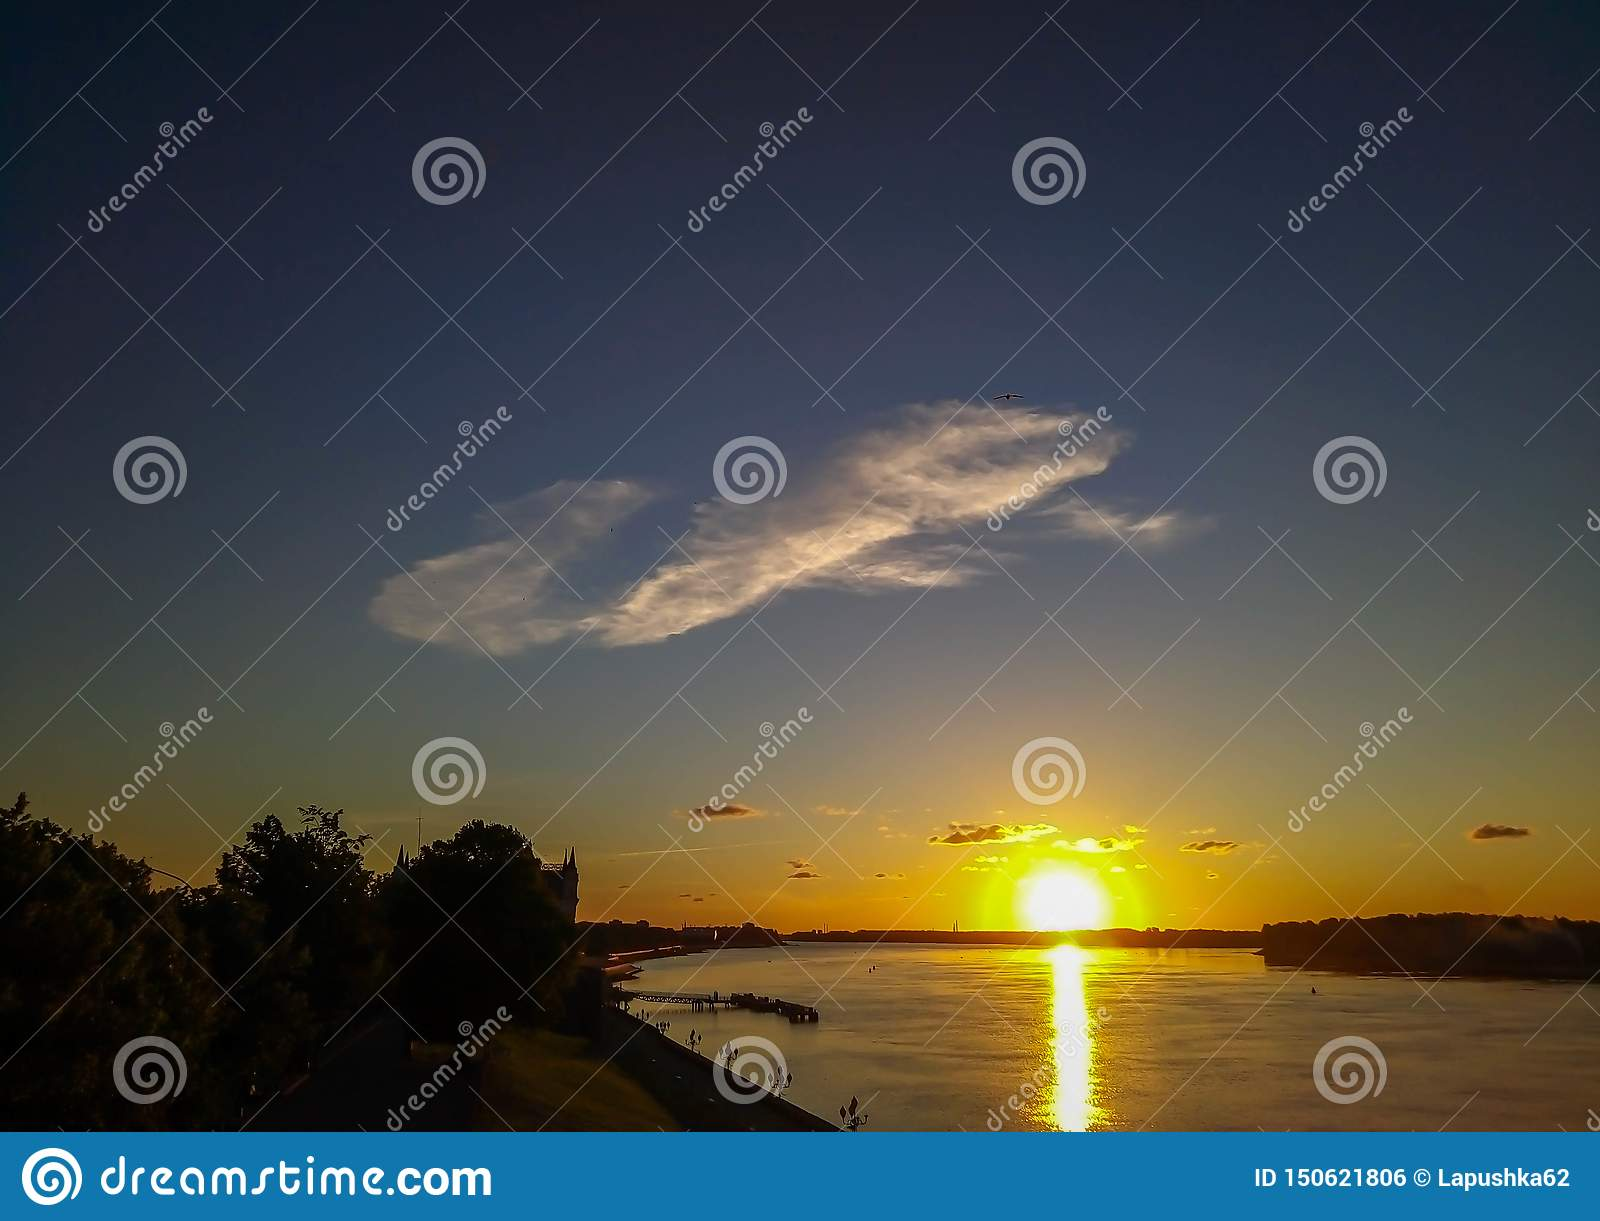 Cloud over the river in the rays of the sunset